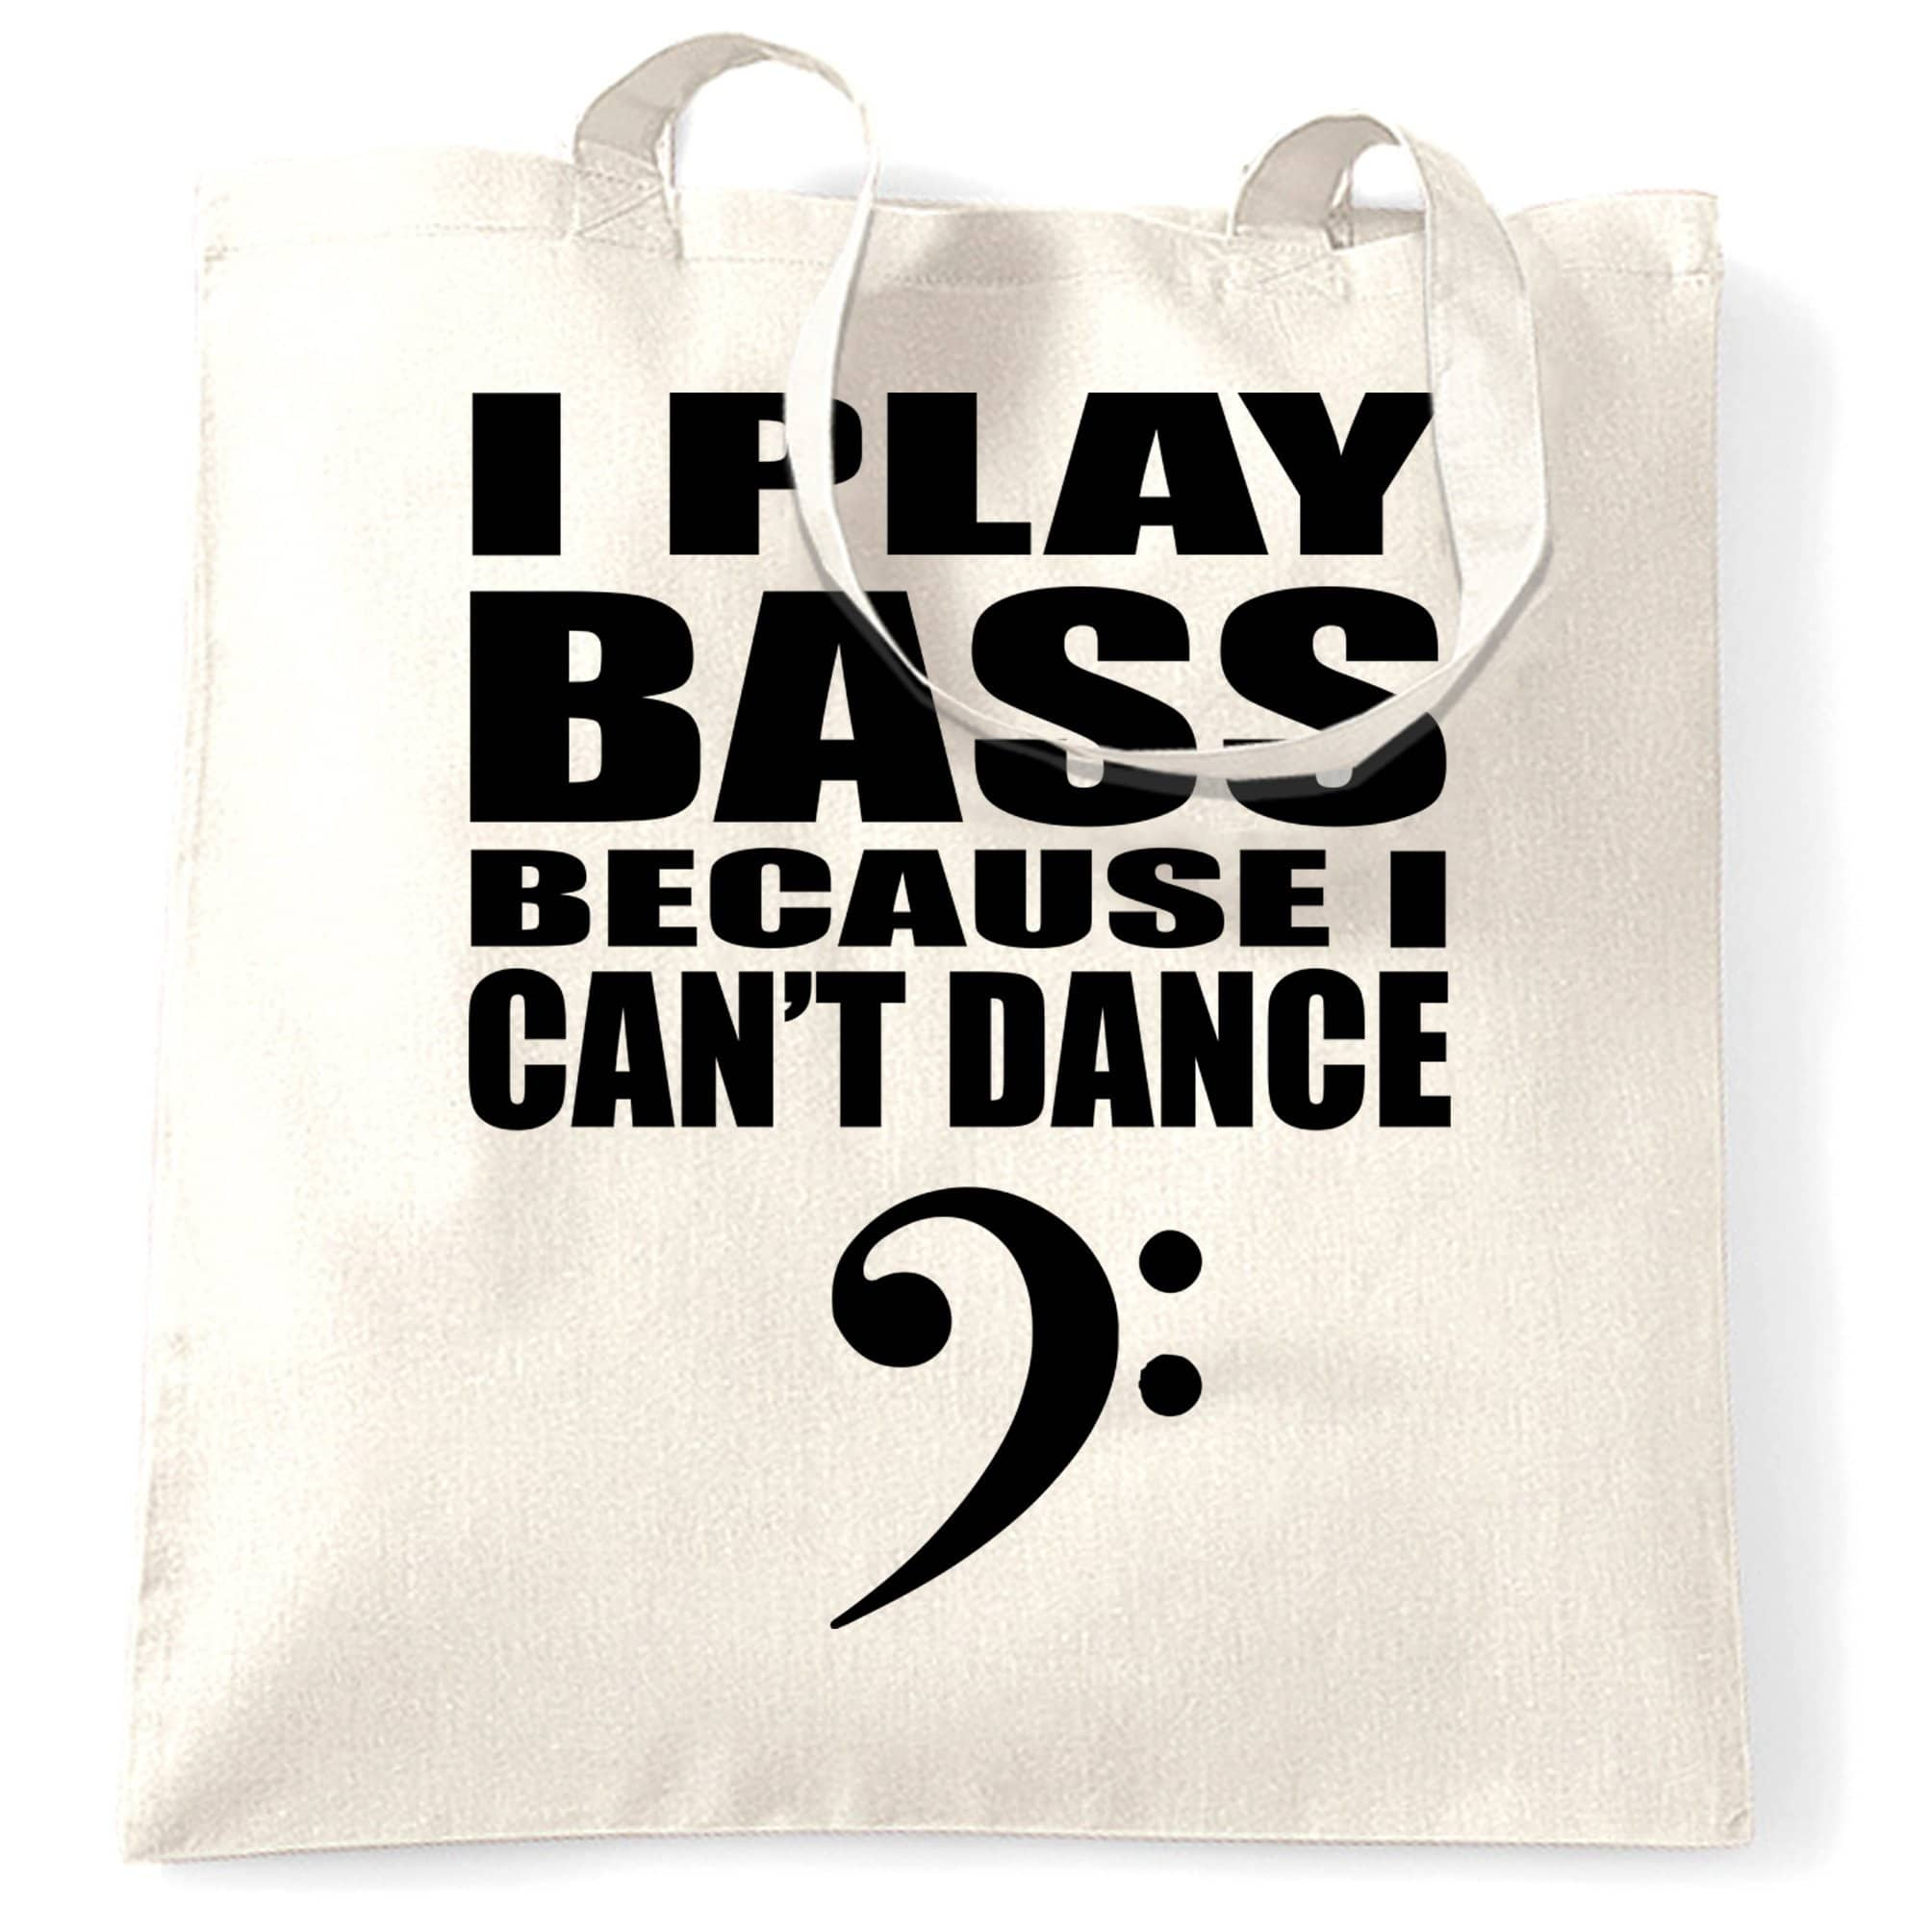 Novelty Music Tote Bag I Play Bass Because Can't Dance